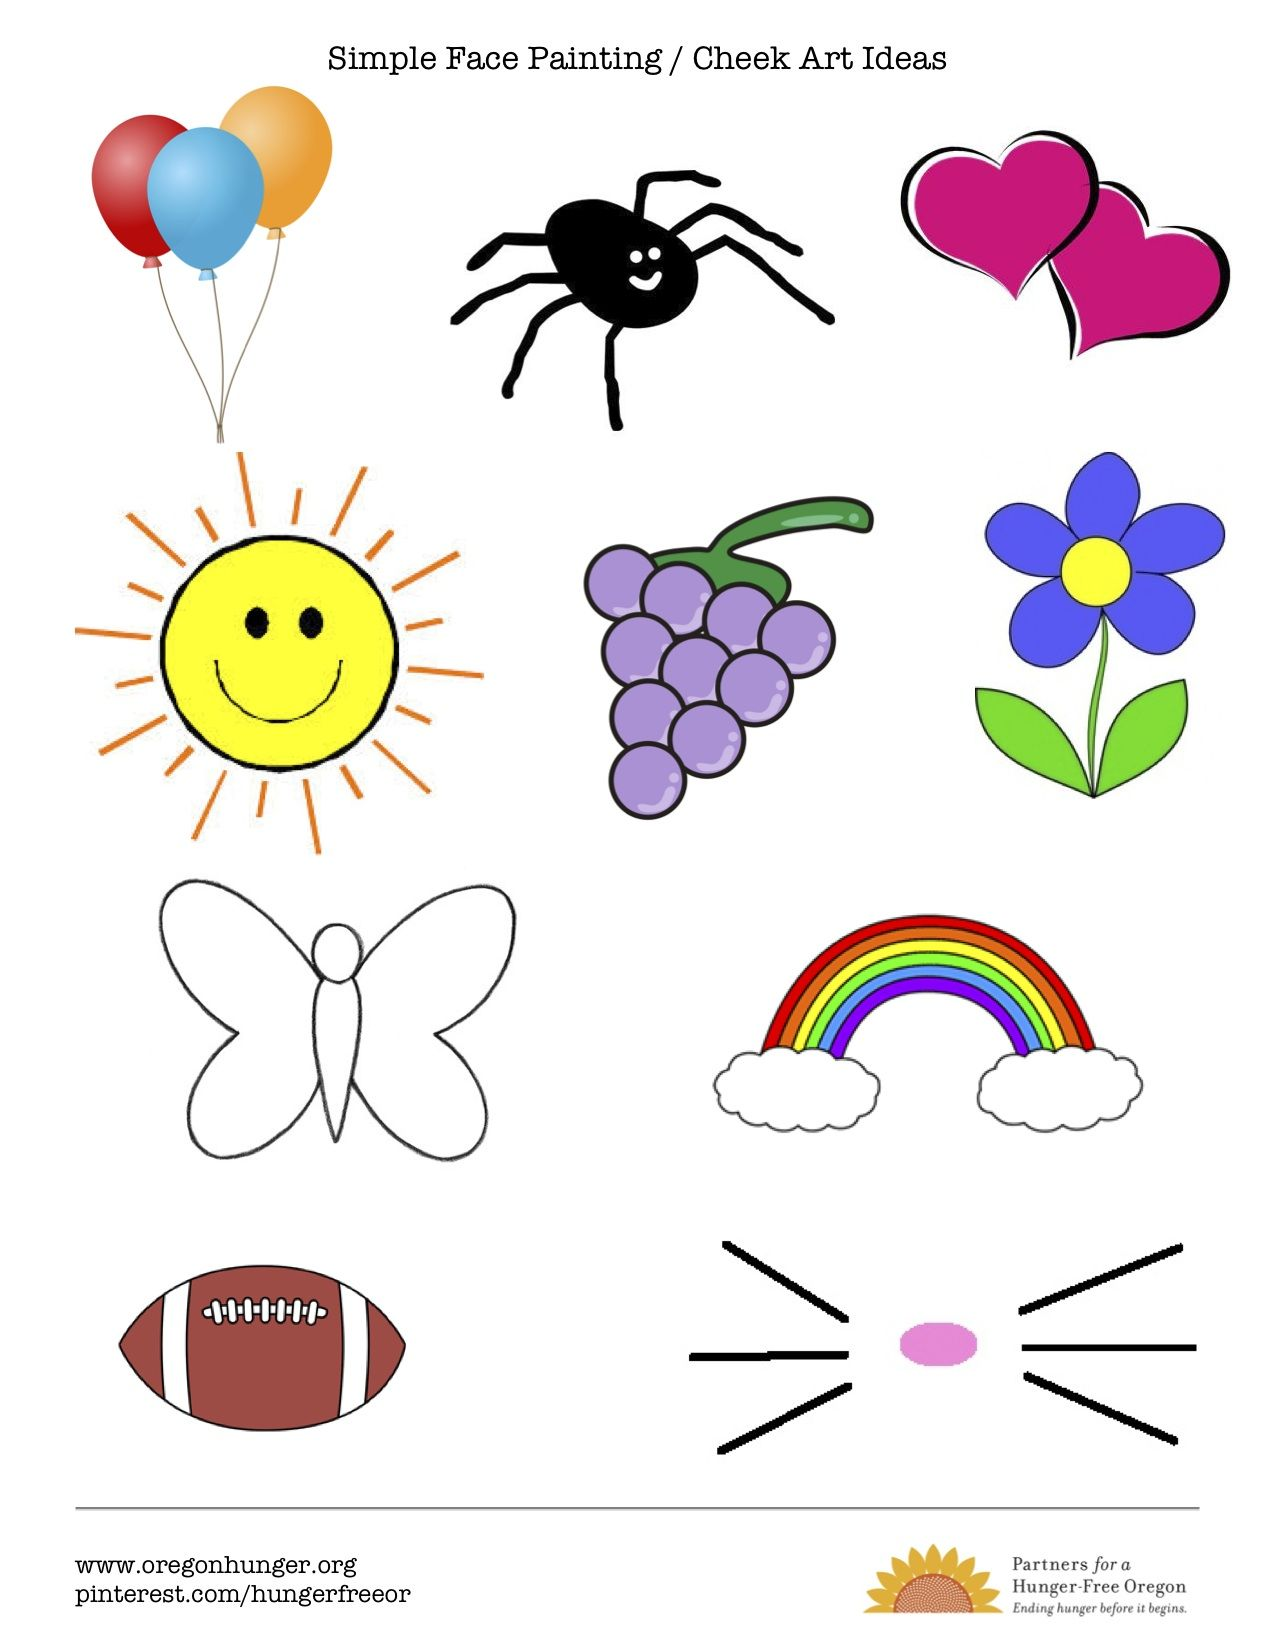 Simple Quick And Easy Face Painting And Cheek Art Ideas Options For Kids To Choose From